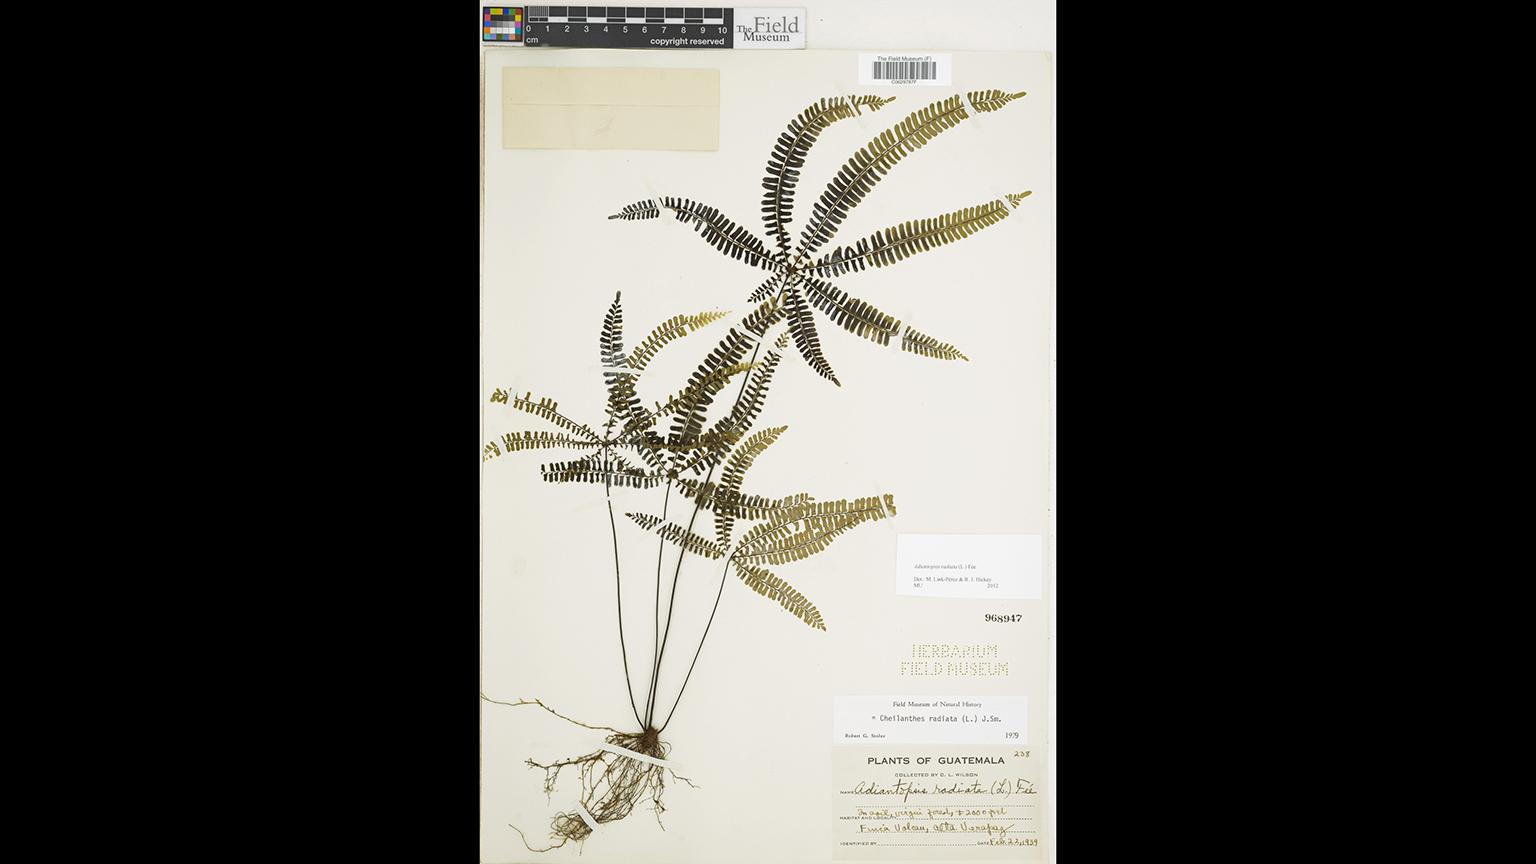 A plant species in the Field Museum's collection (Courtesy Field Museum)